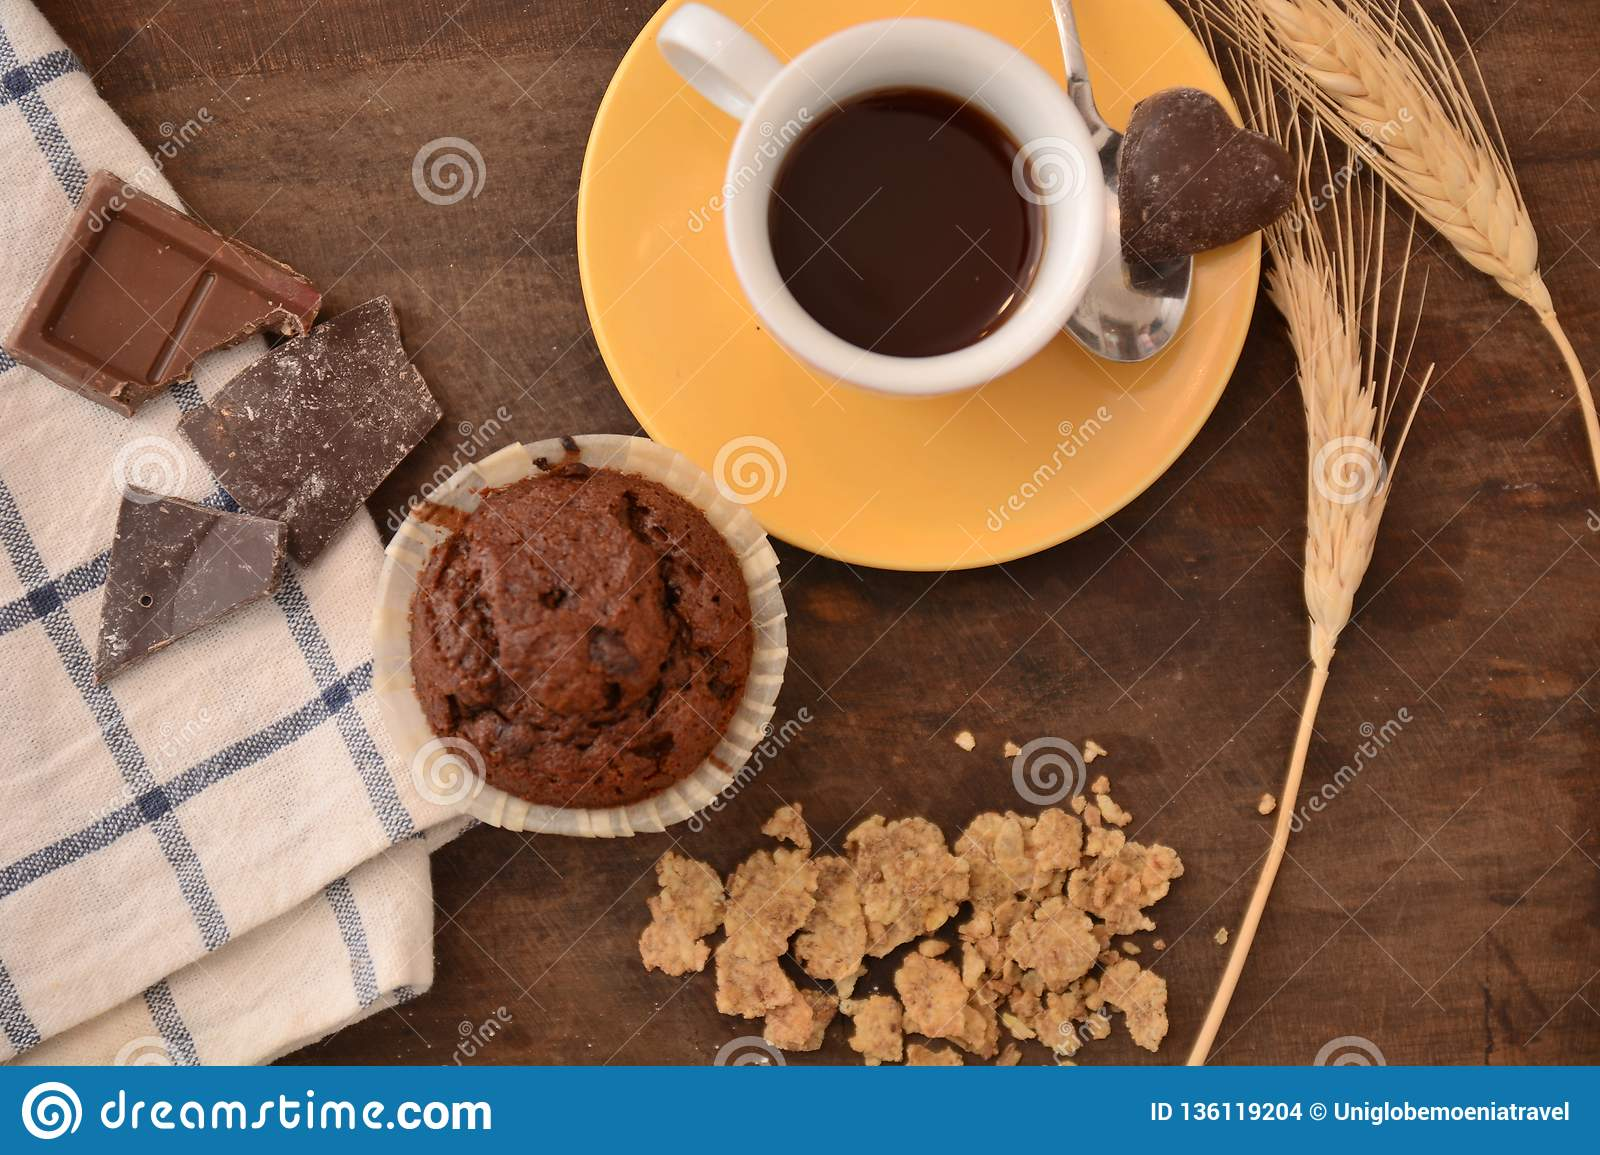 Breakfast cup coffe espresso black cereals muffin milk chocolate pieces on table morning food